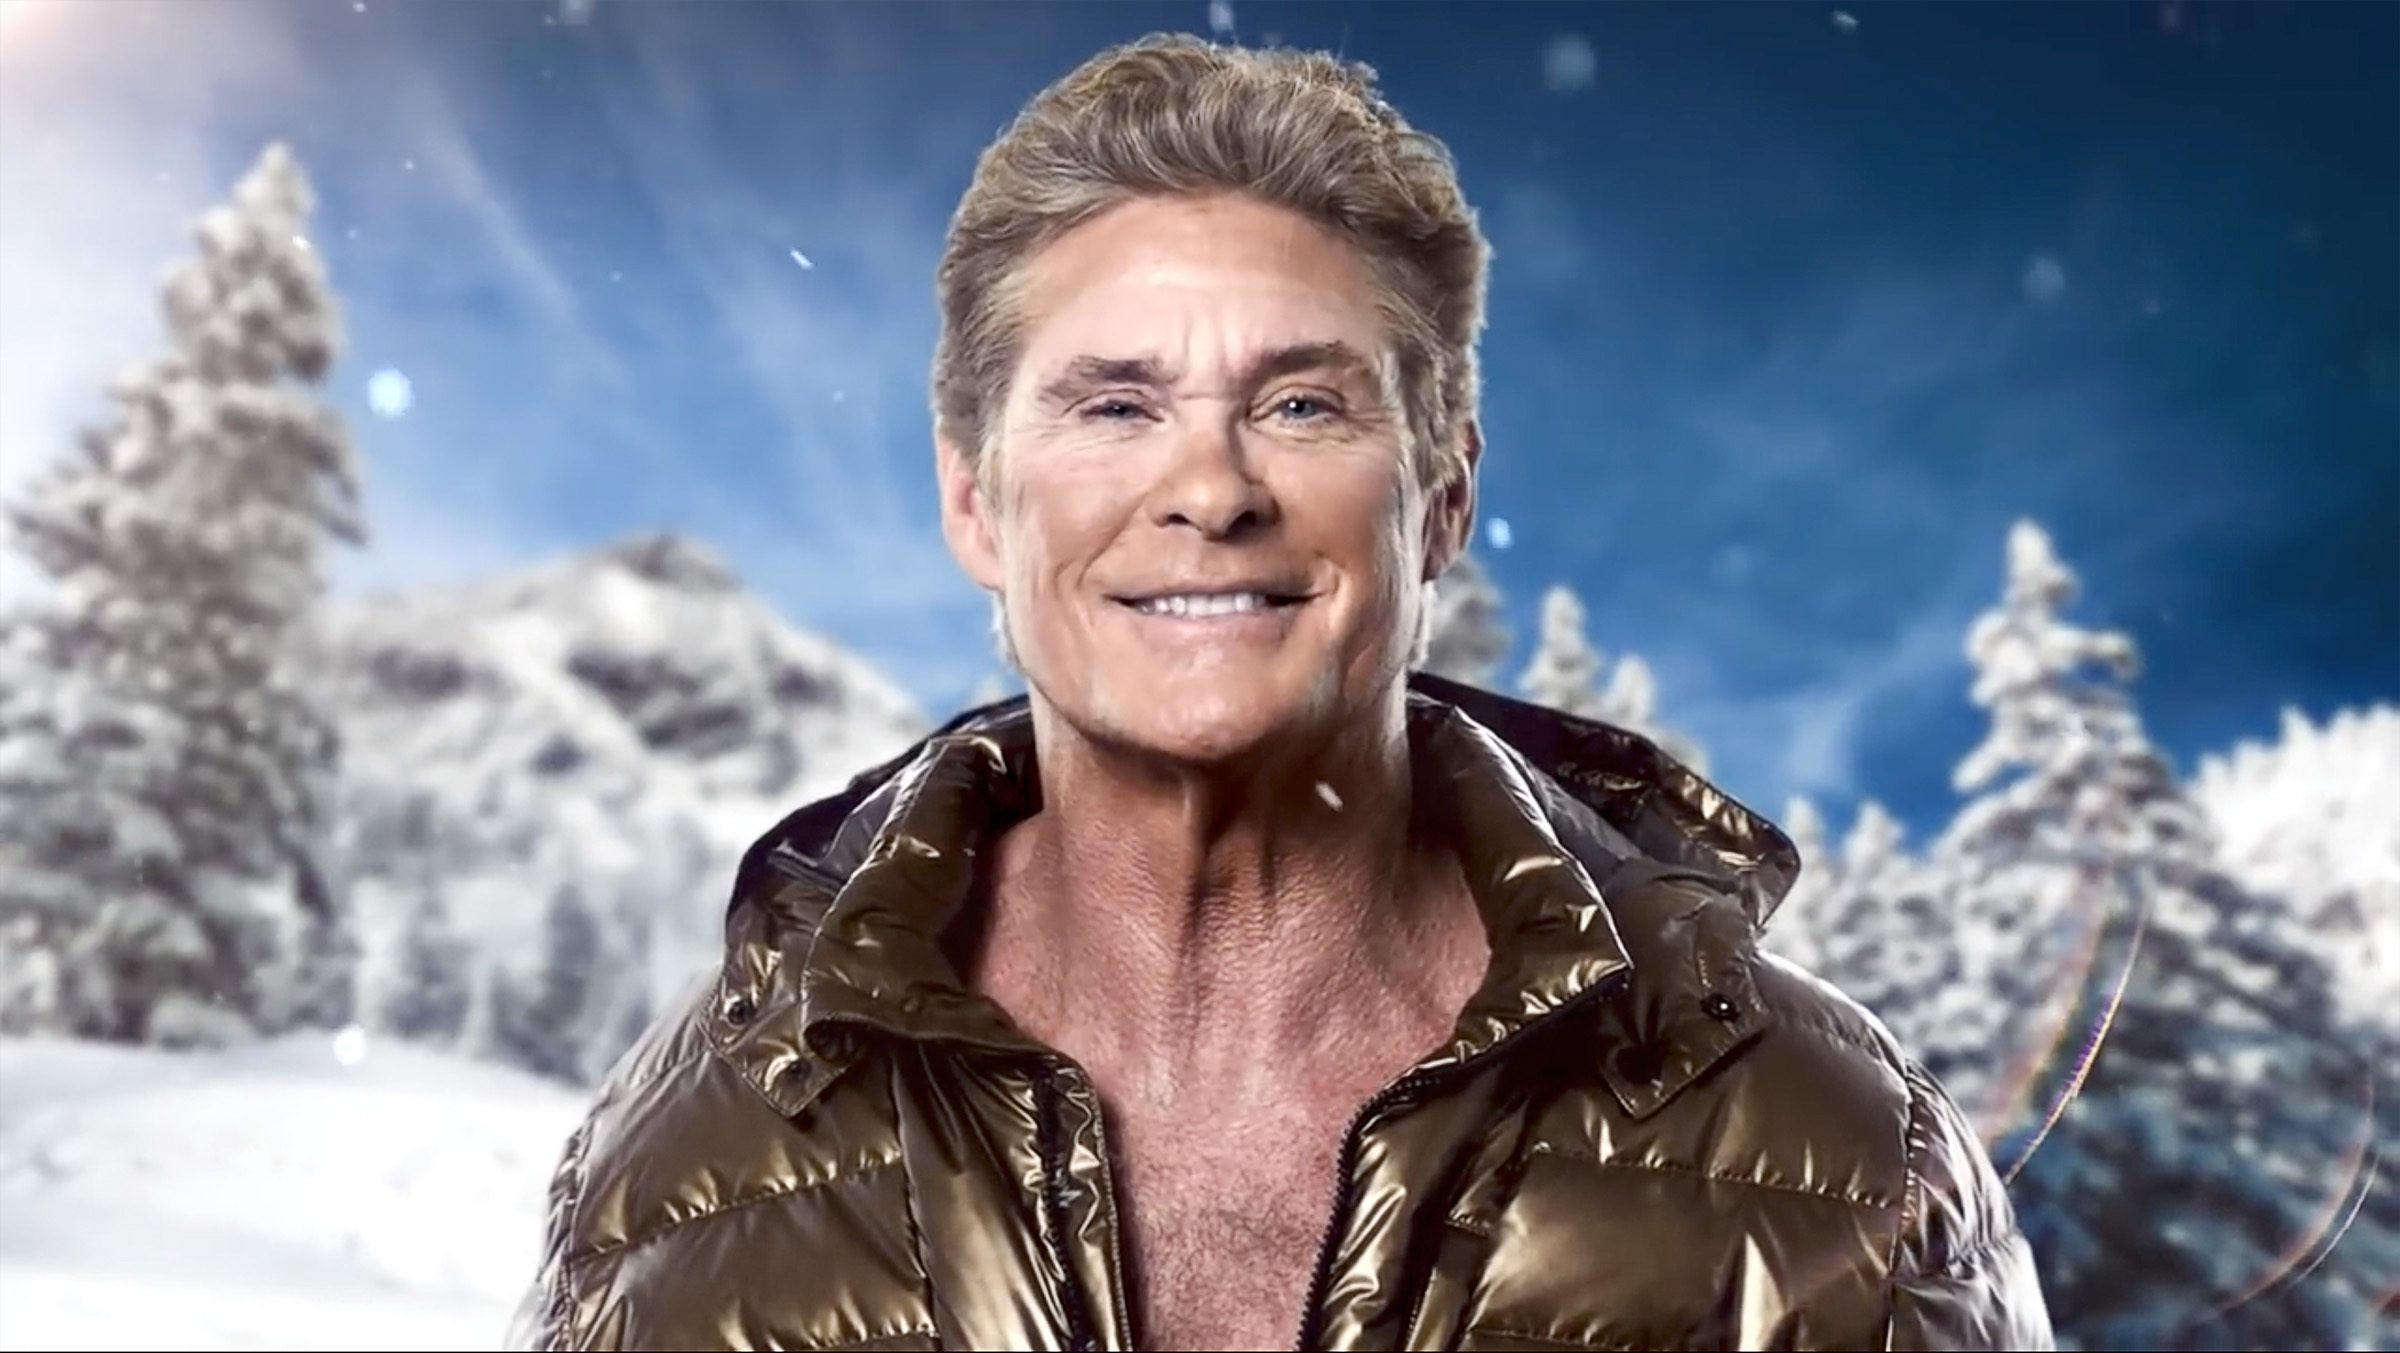 DAVID HASSELHOFF_Alpinresorts. //. AGENCY_Brokoli